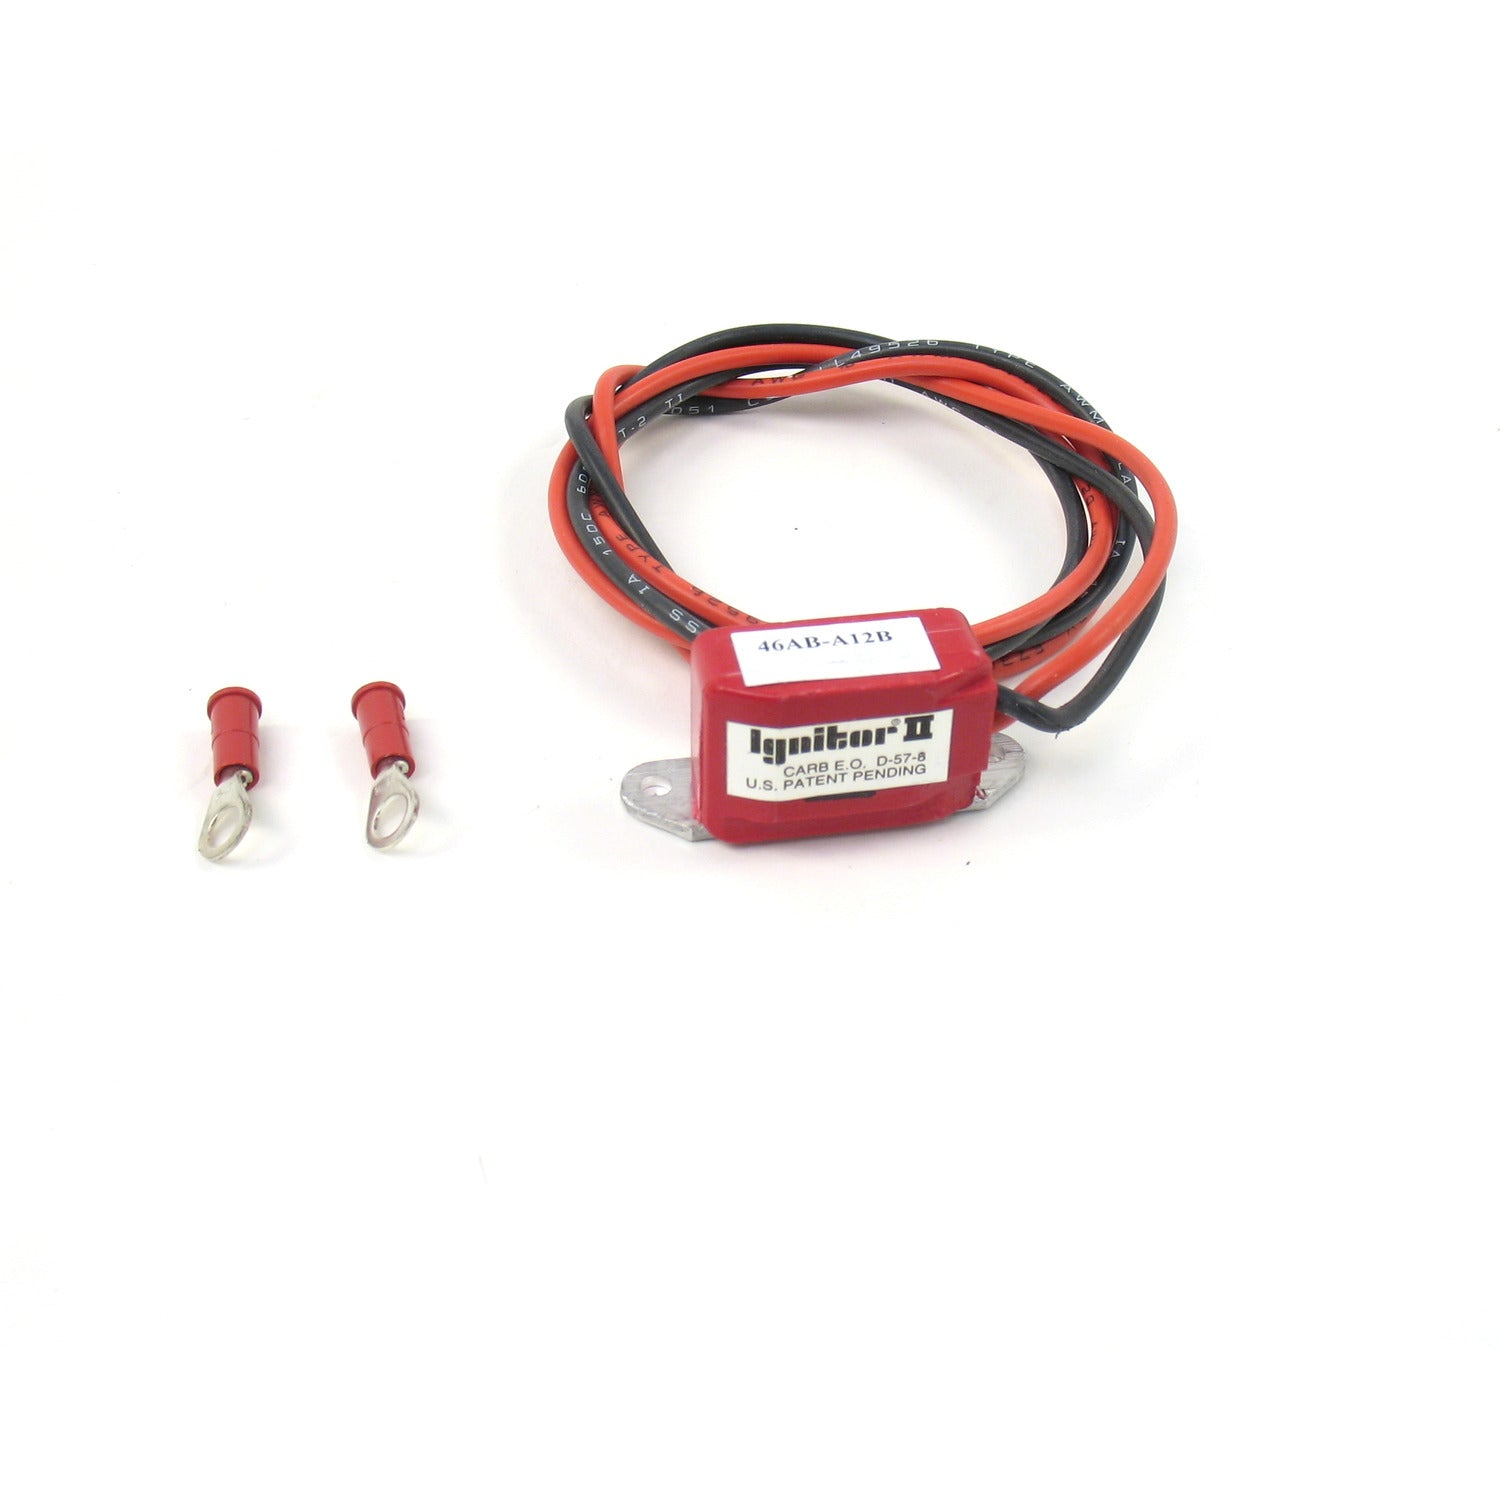 PerTronix D500704 Module (replacement) Ignitor II for PerTronix Flame-Thrower Rover V8 Distributor